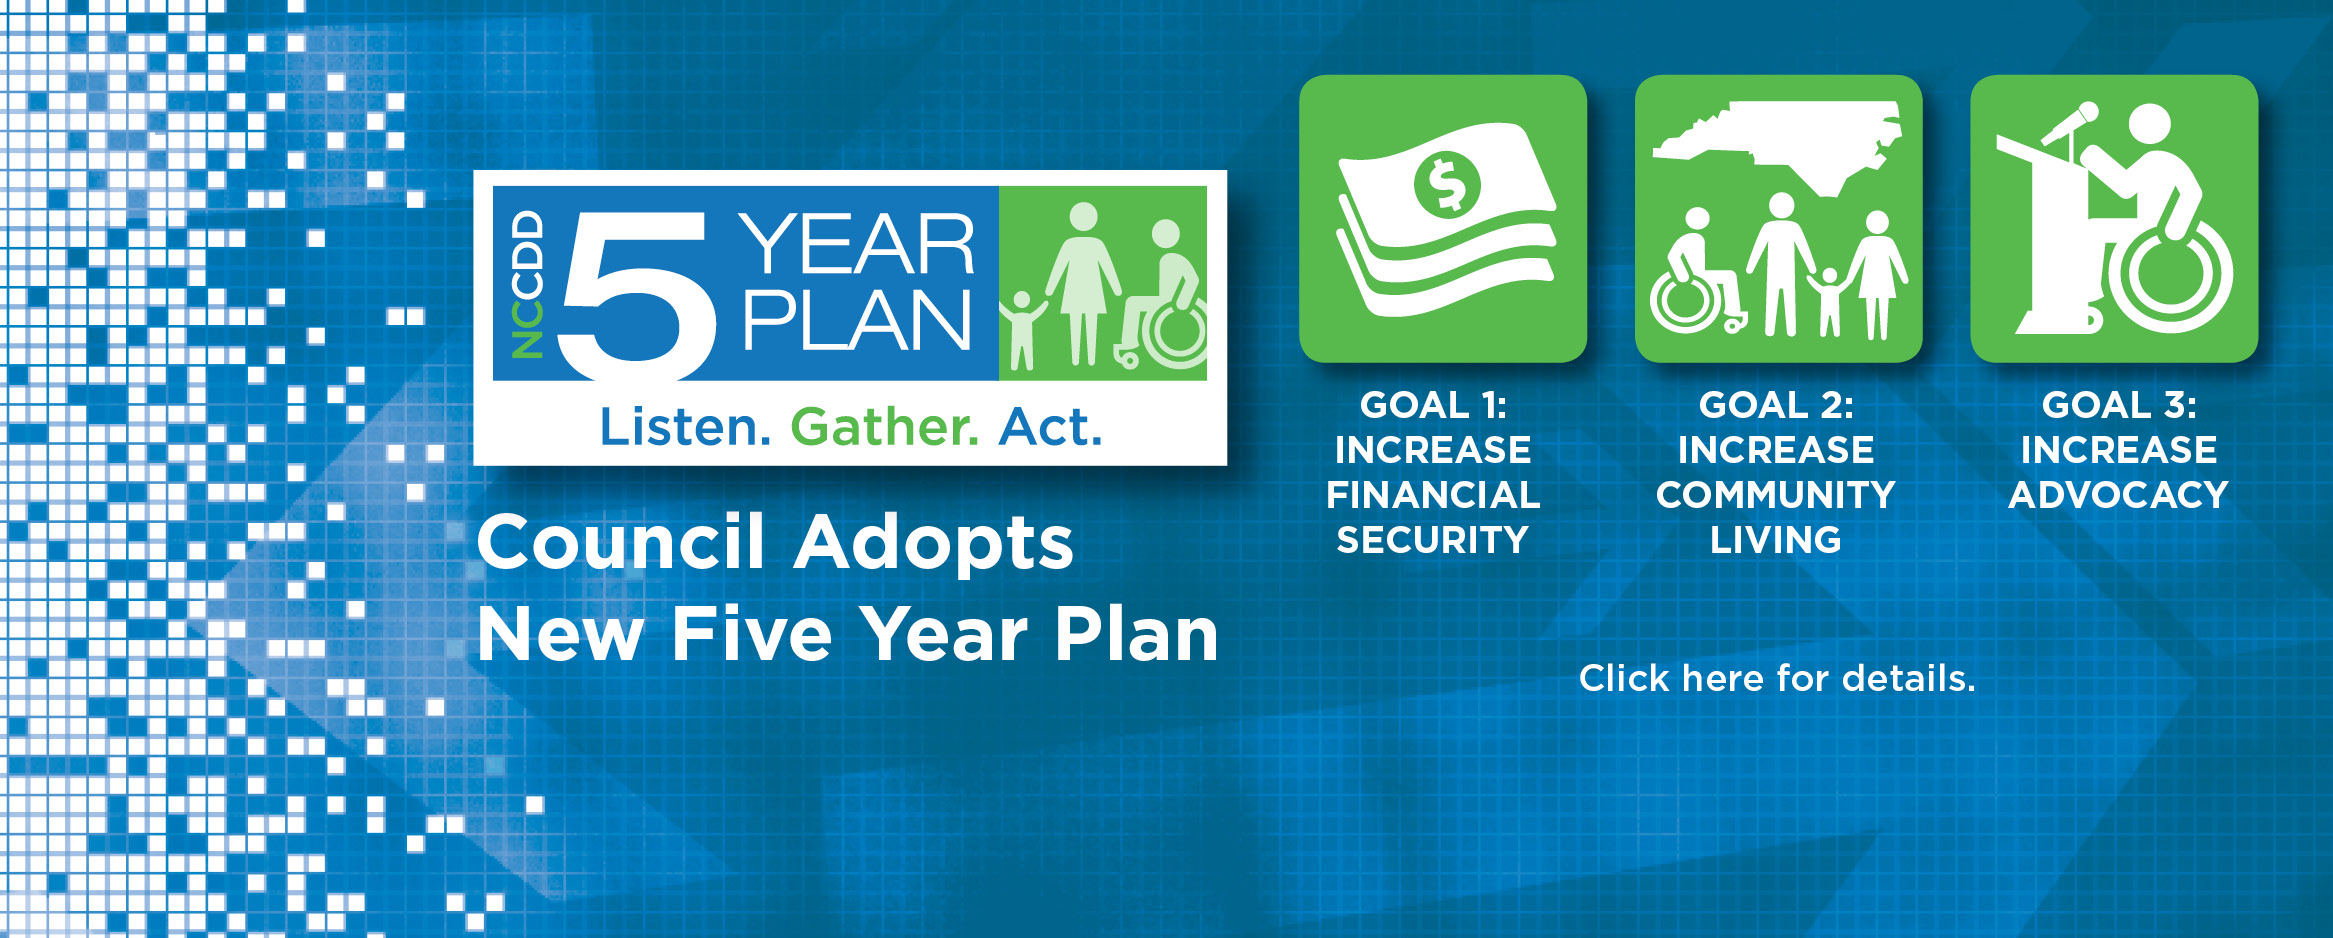 Council Adopts New Five Year Plan